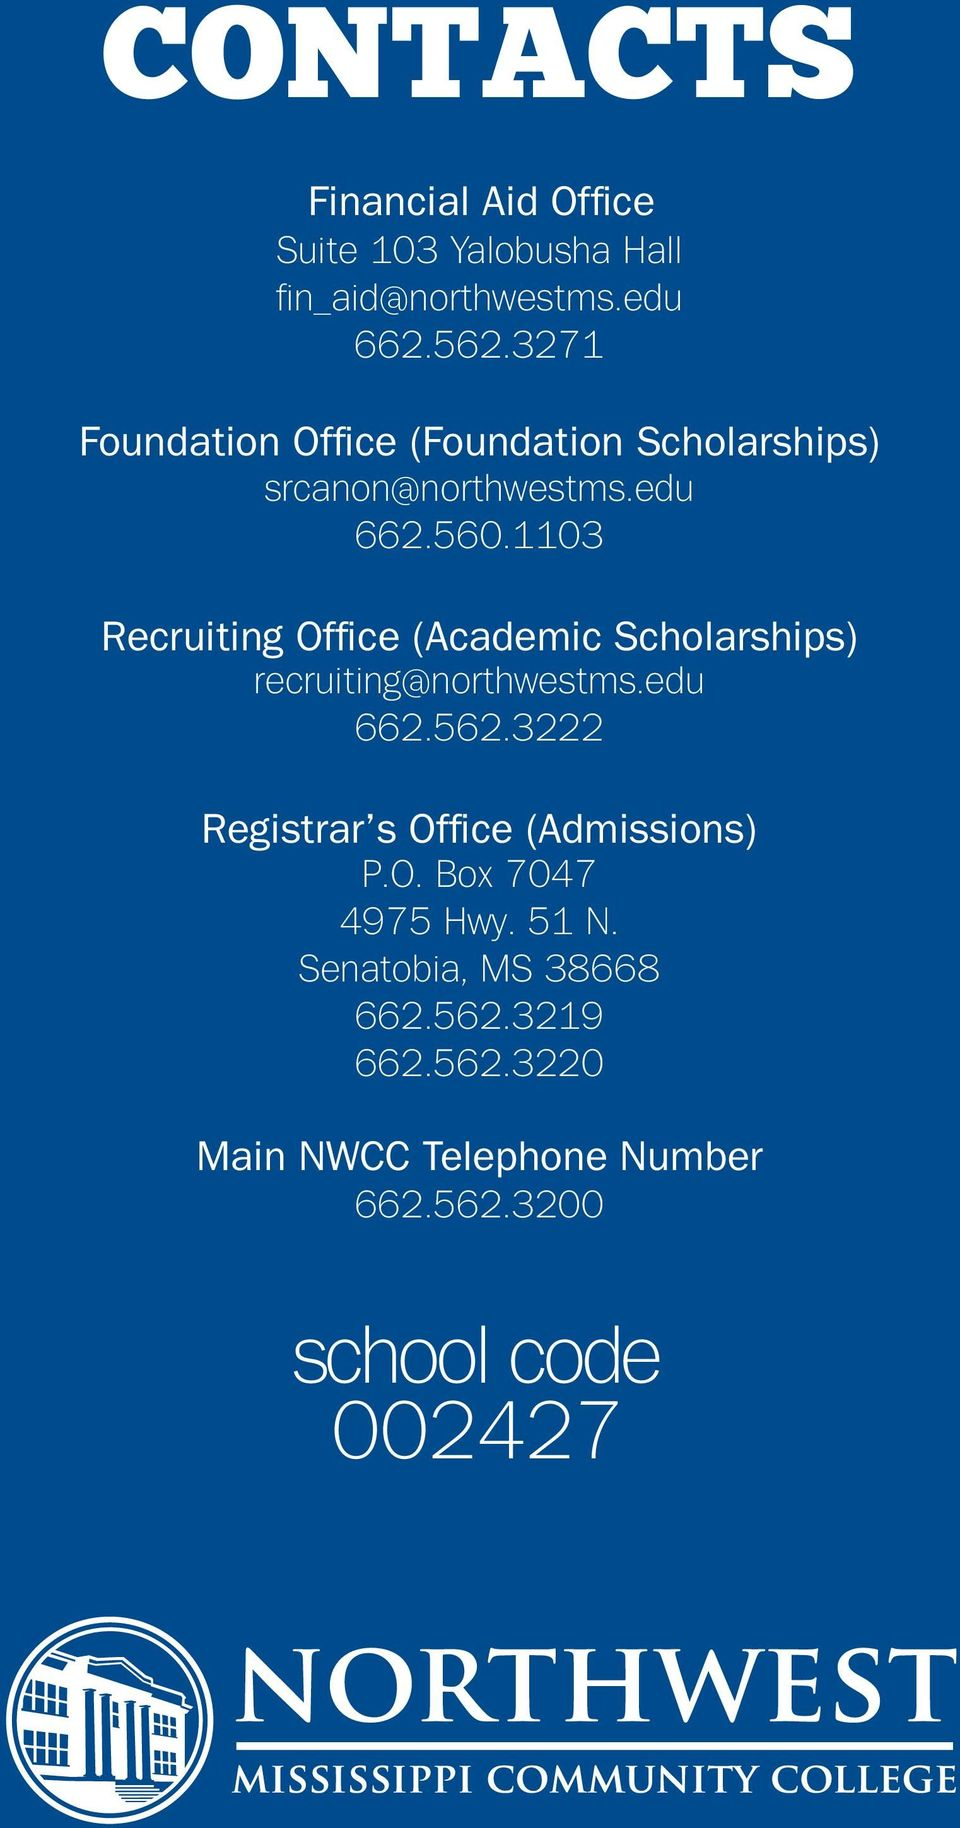 1103 Recruiting Office (Academic Scholarships) recruiting@northwestms.edu 662.562.